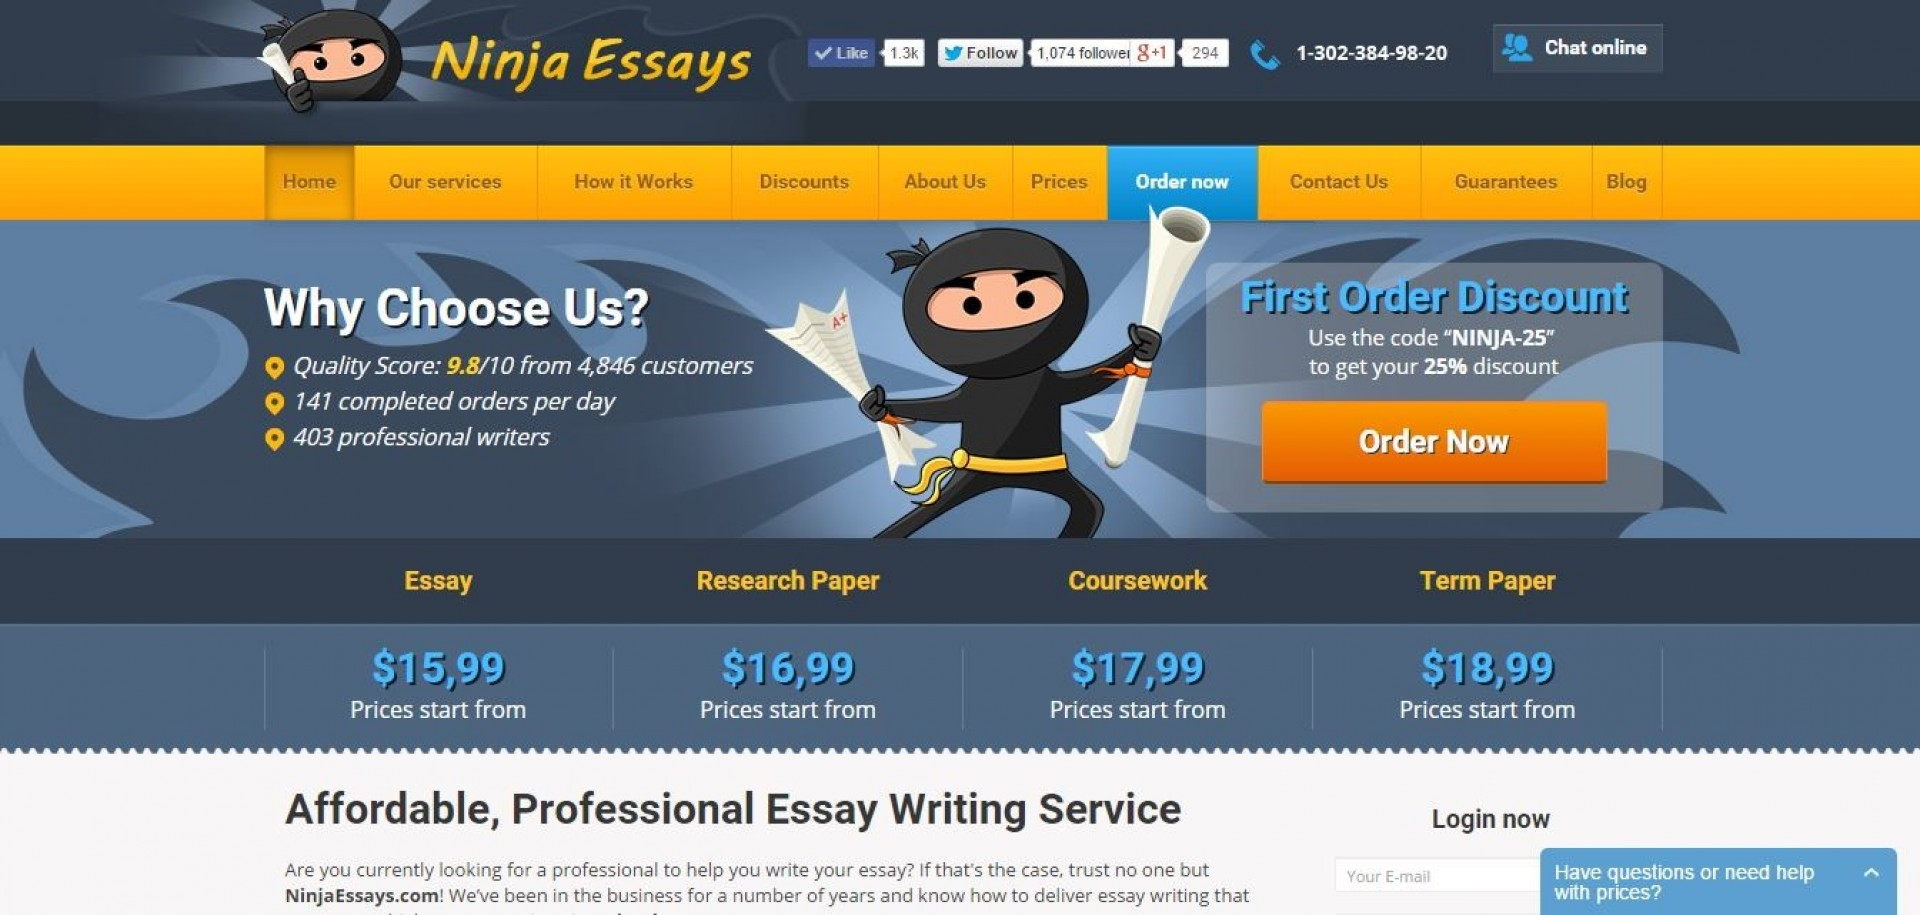 005 Ninja Essays Essay Example 257591 Fullformatjpgwidth1600height1600modeminupscalefalse Fascinating Is Legit Screwball Review 1920